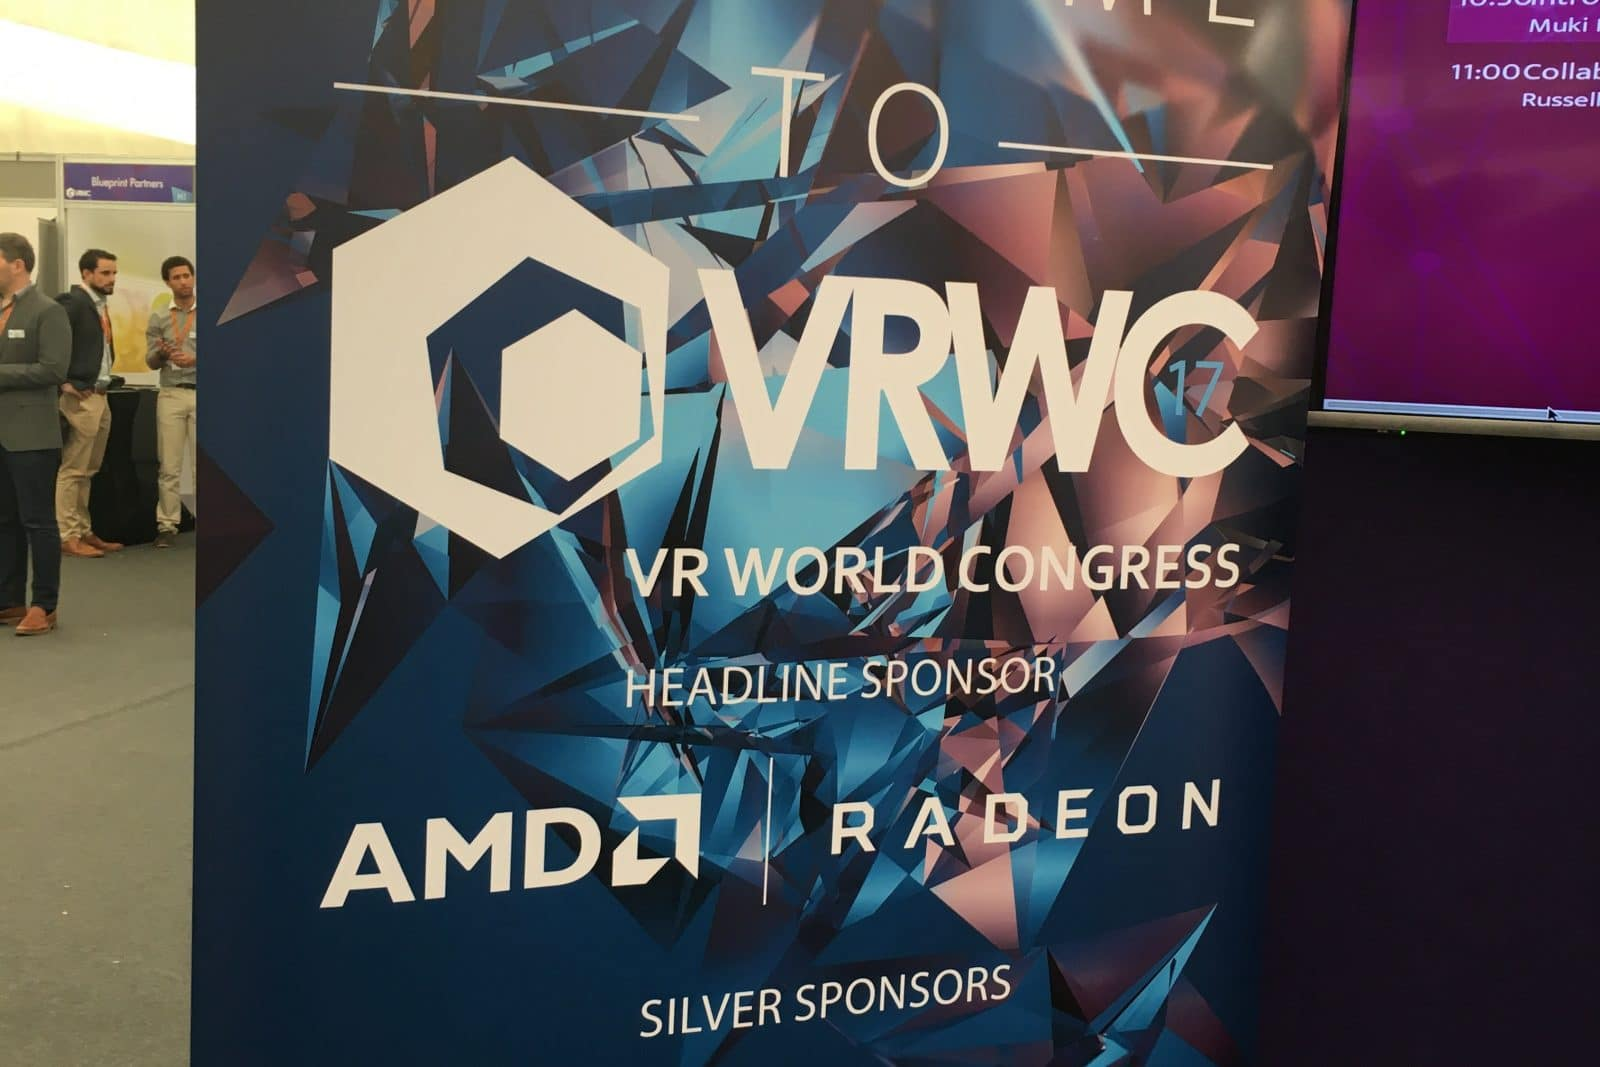 VR World Congress Poster